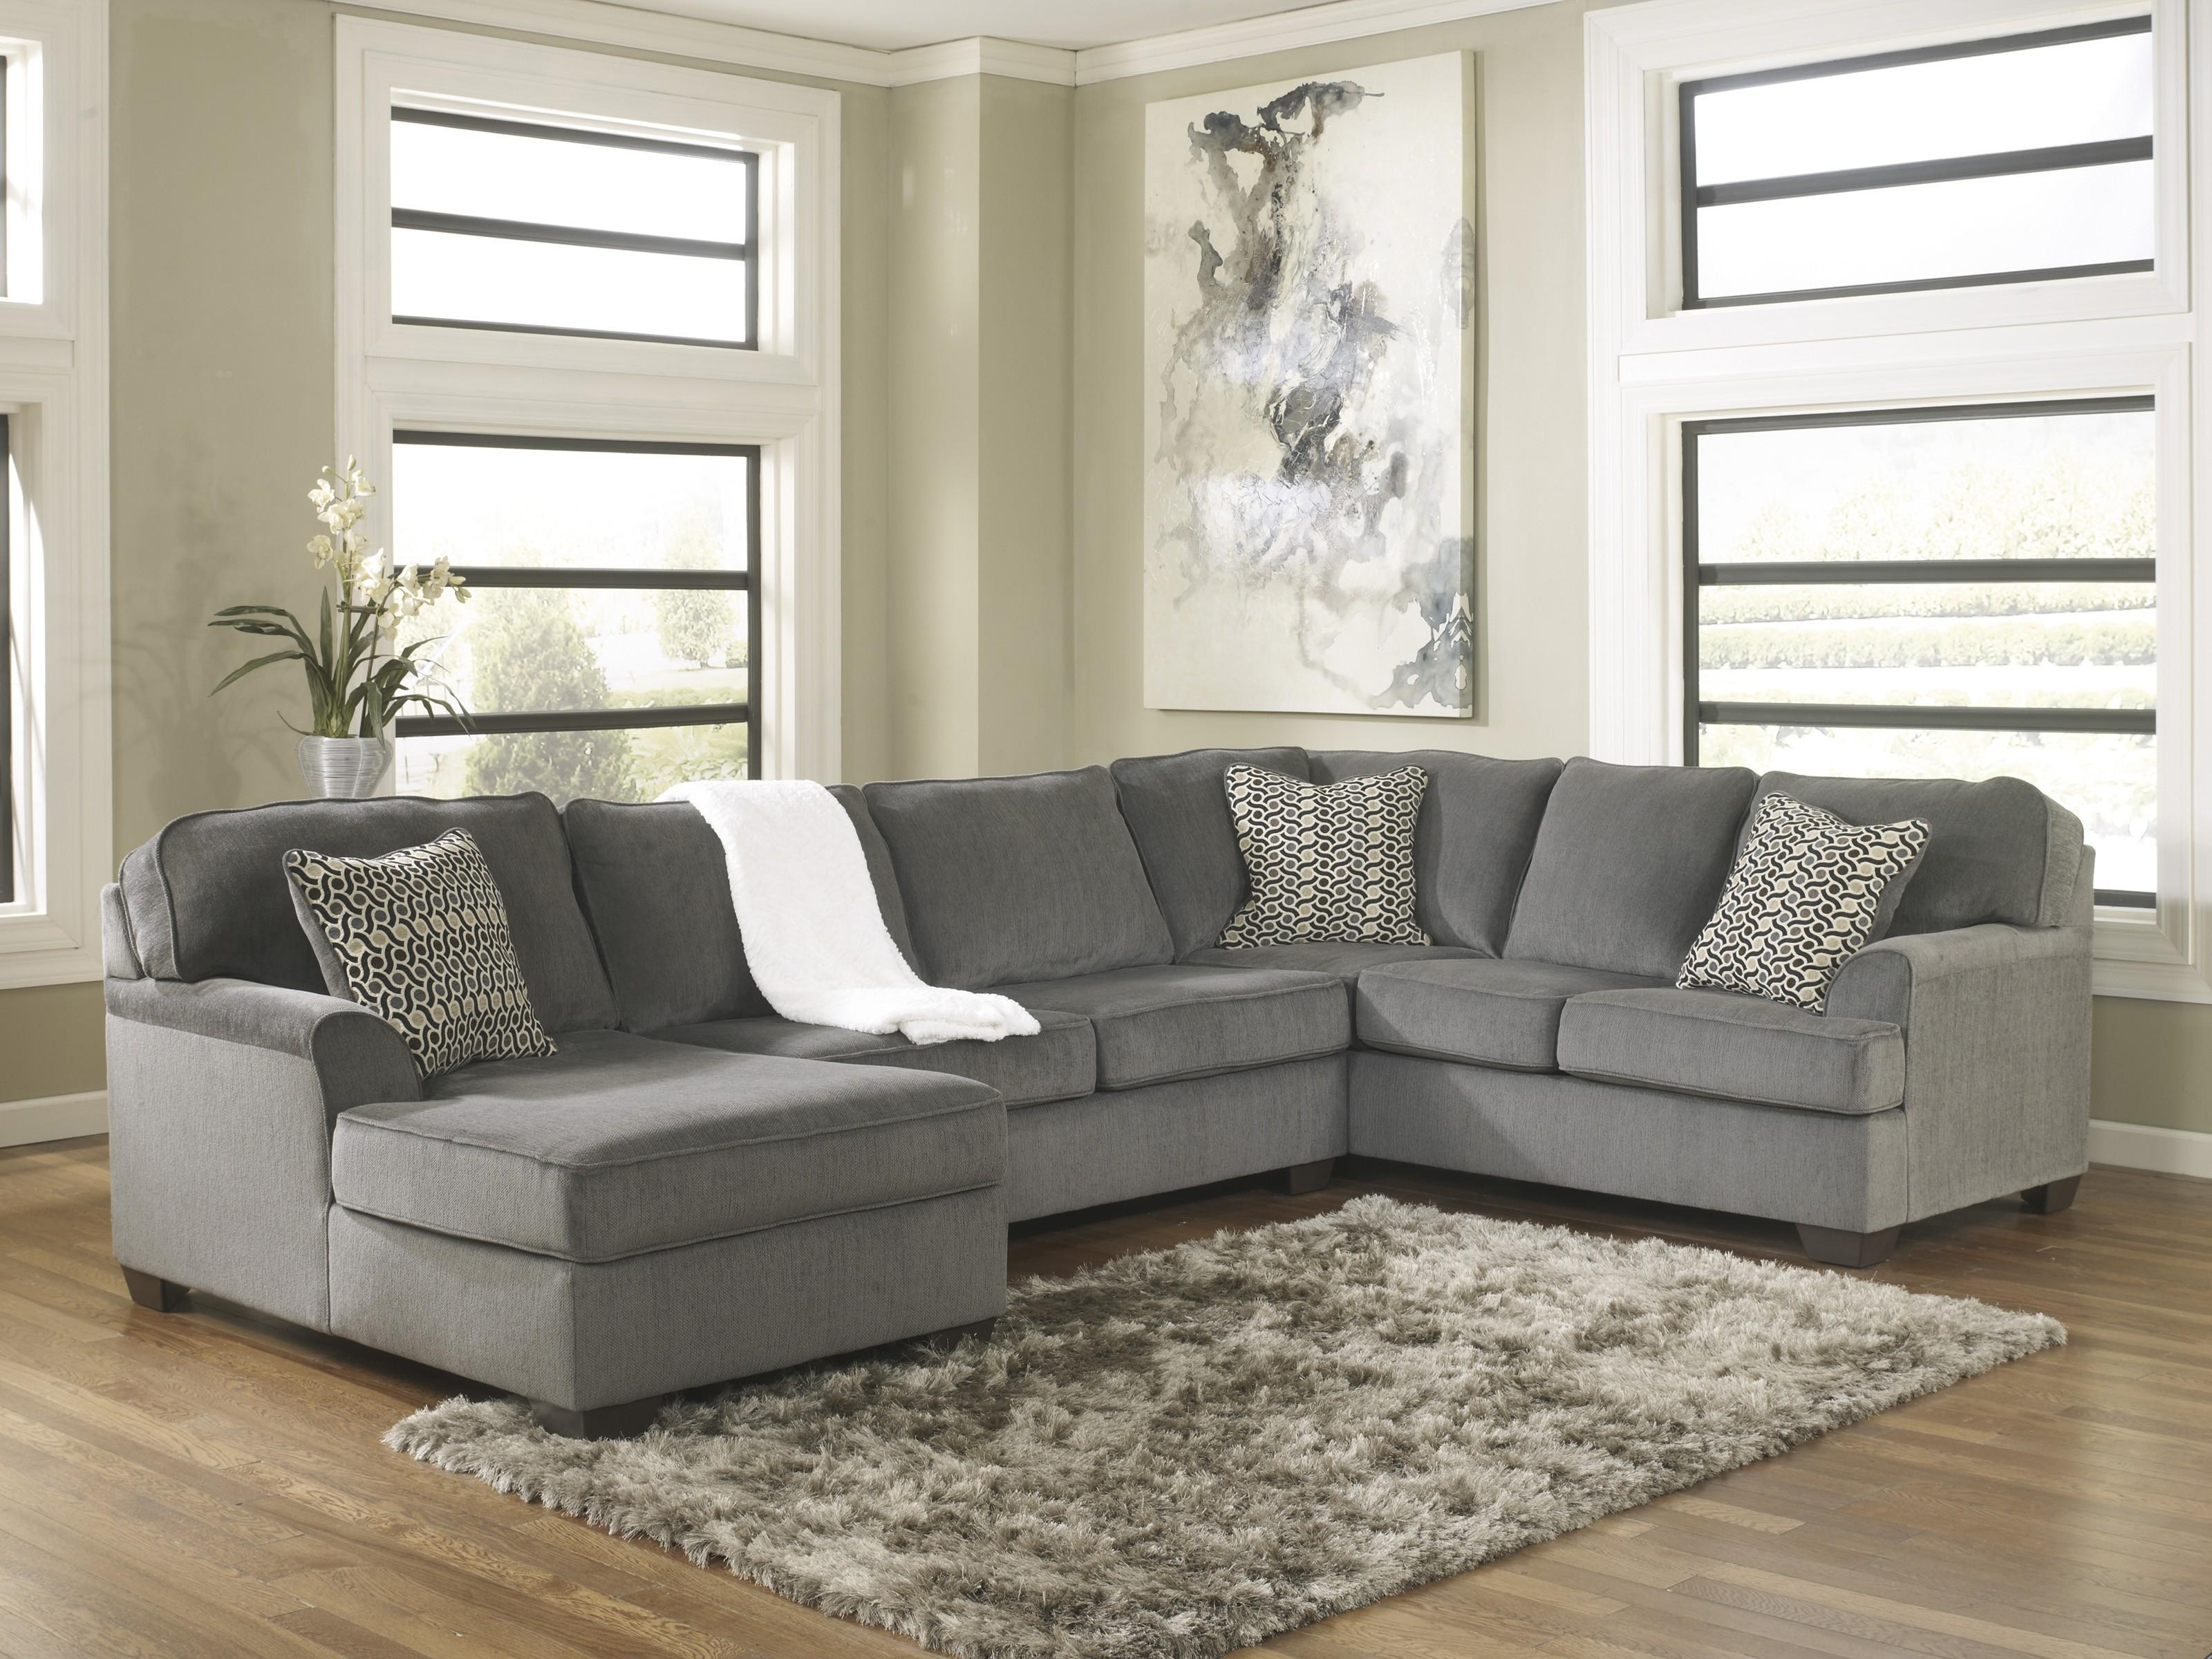 Loric Smoke 3 Piece Sectional Sofa For $ (View 4 of 20)